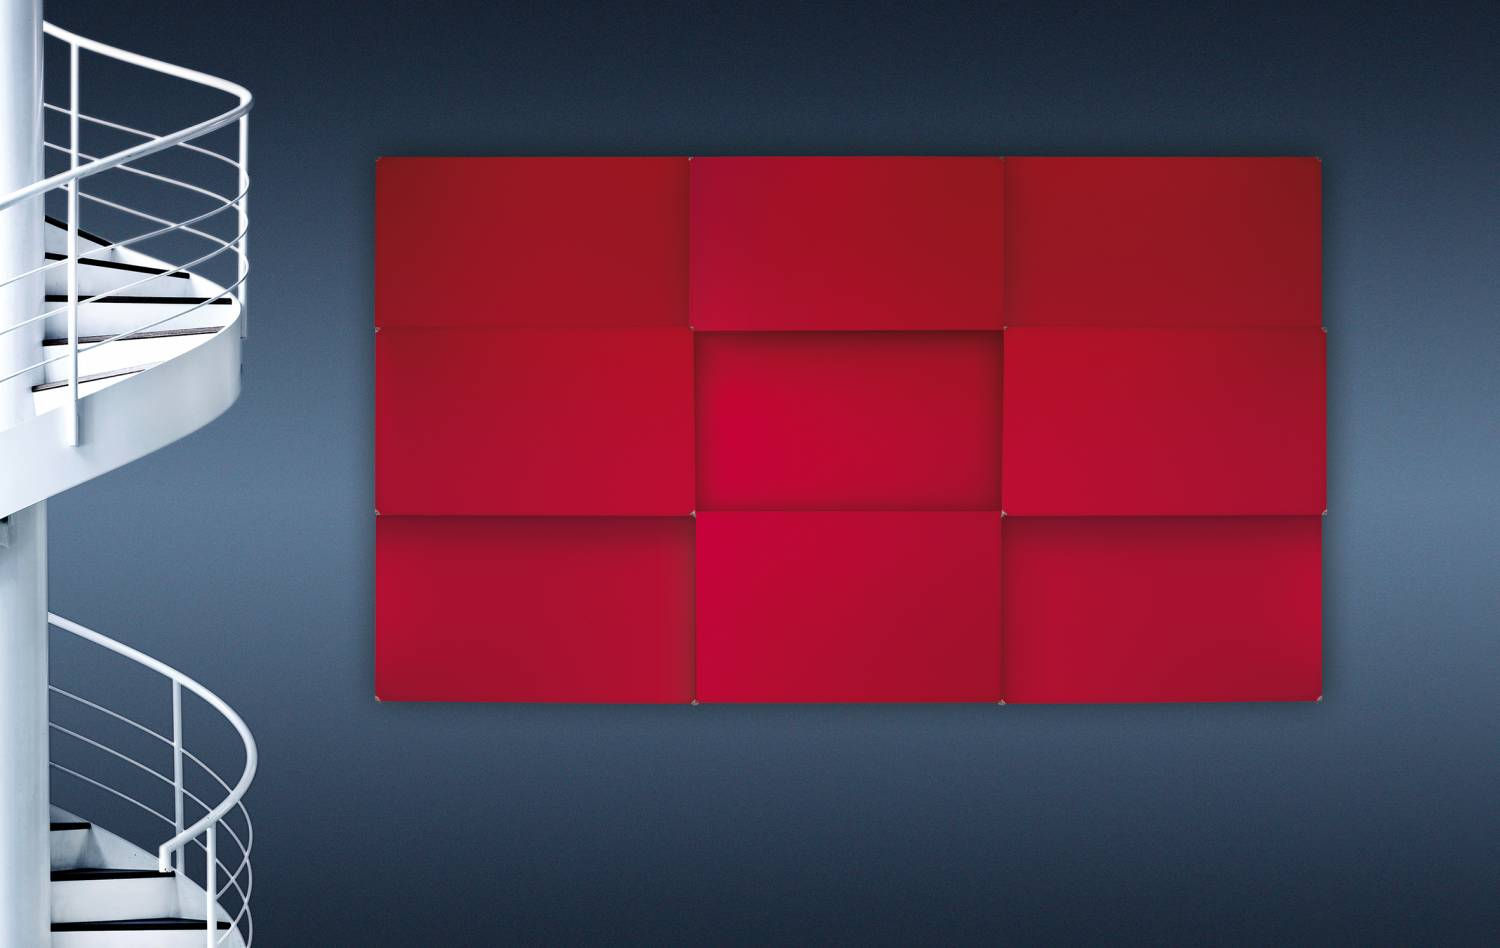 Sipario-Ocee-Wall-Mounted-Sound-Absorbing-Acoustic-Panels-In-Situ